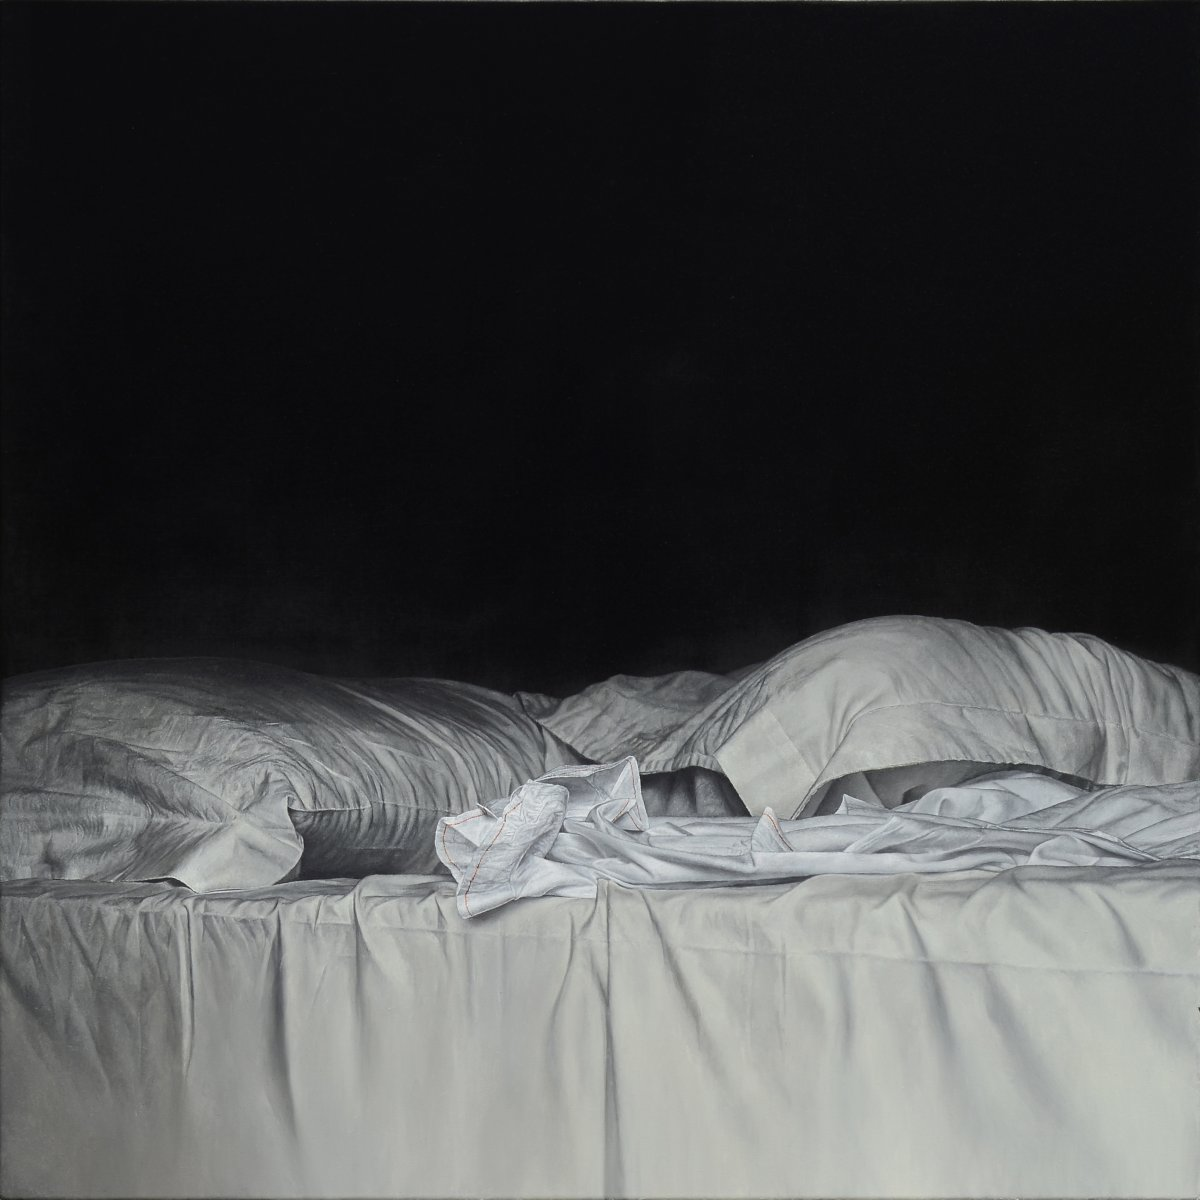 Bed 3 - Christoph Eberle